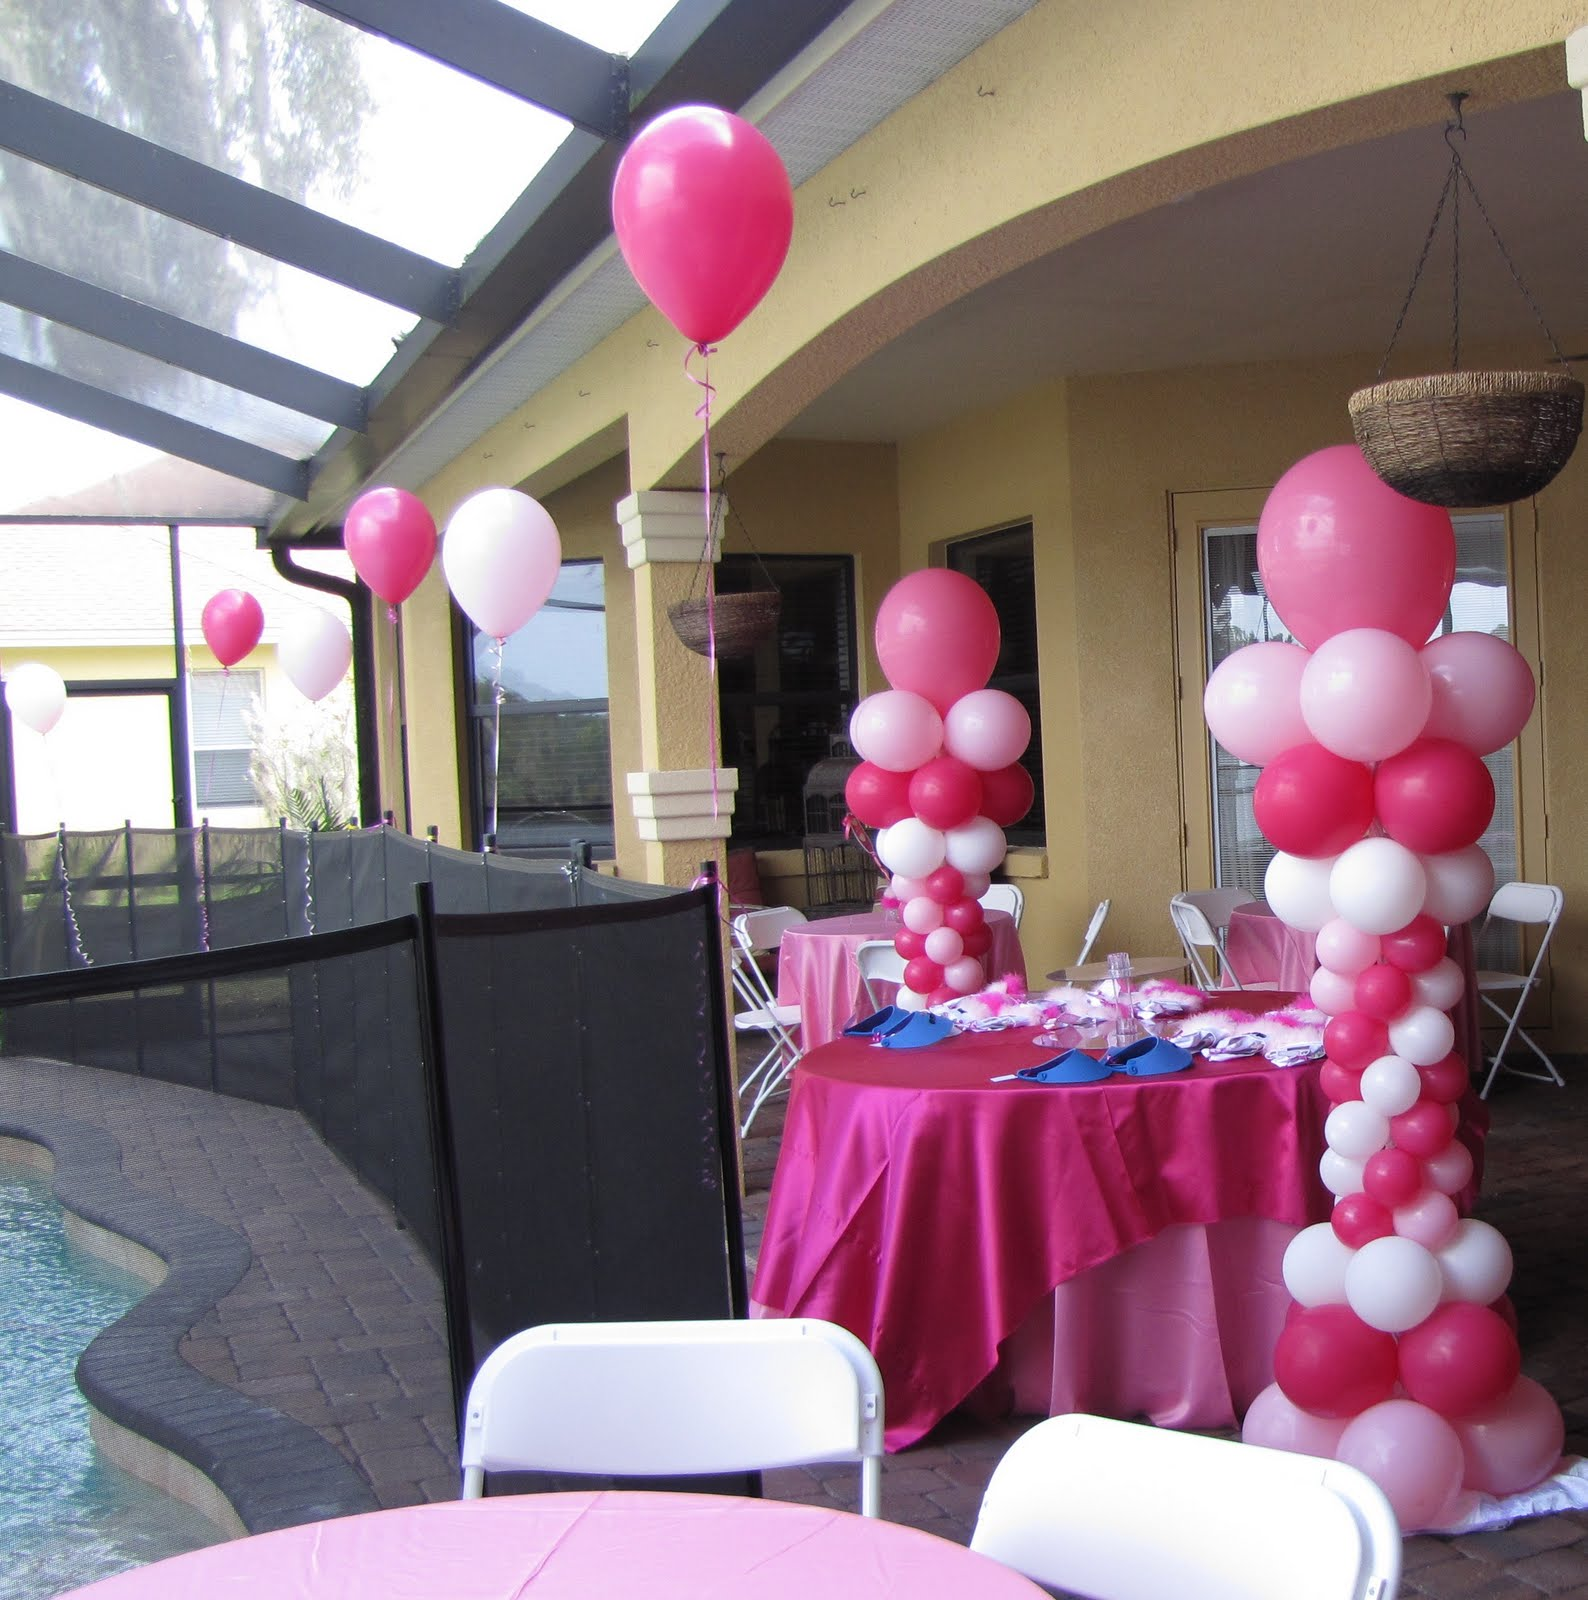 People Decorating For A Party party people event decorating company: pink birthday party